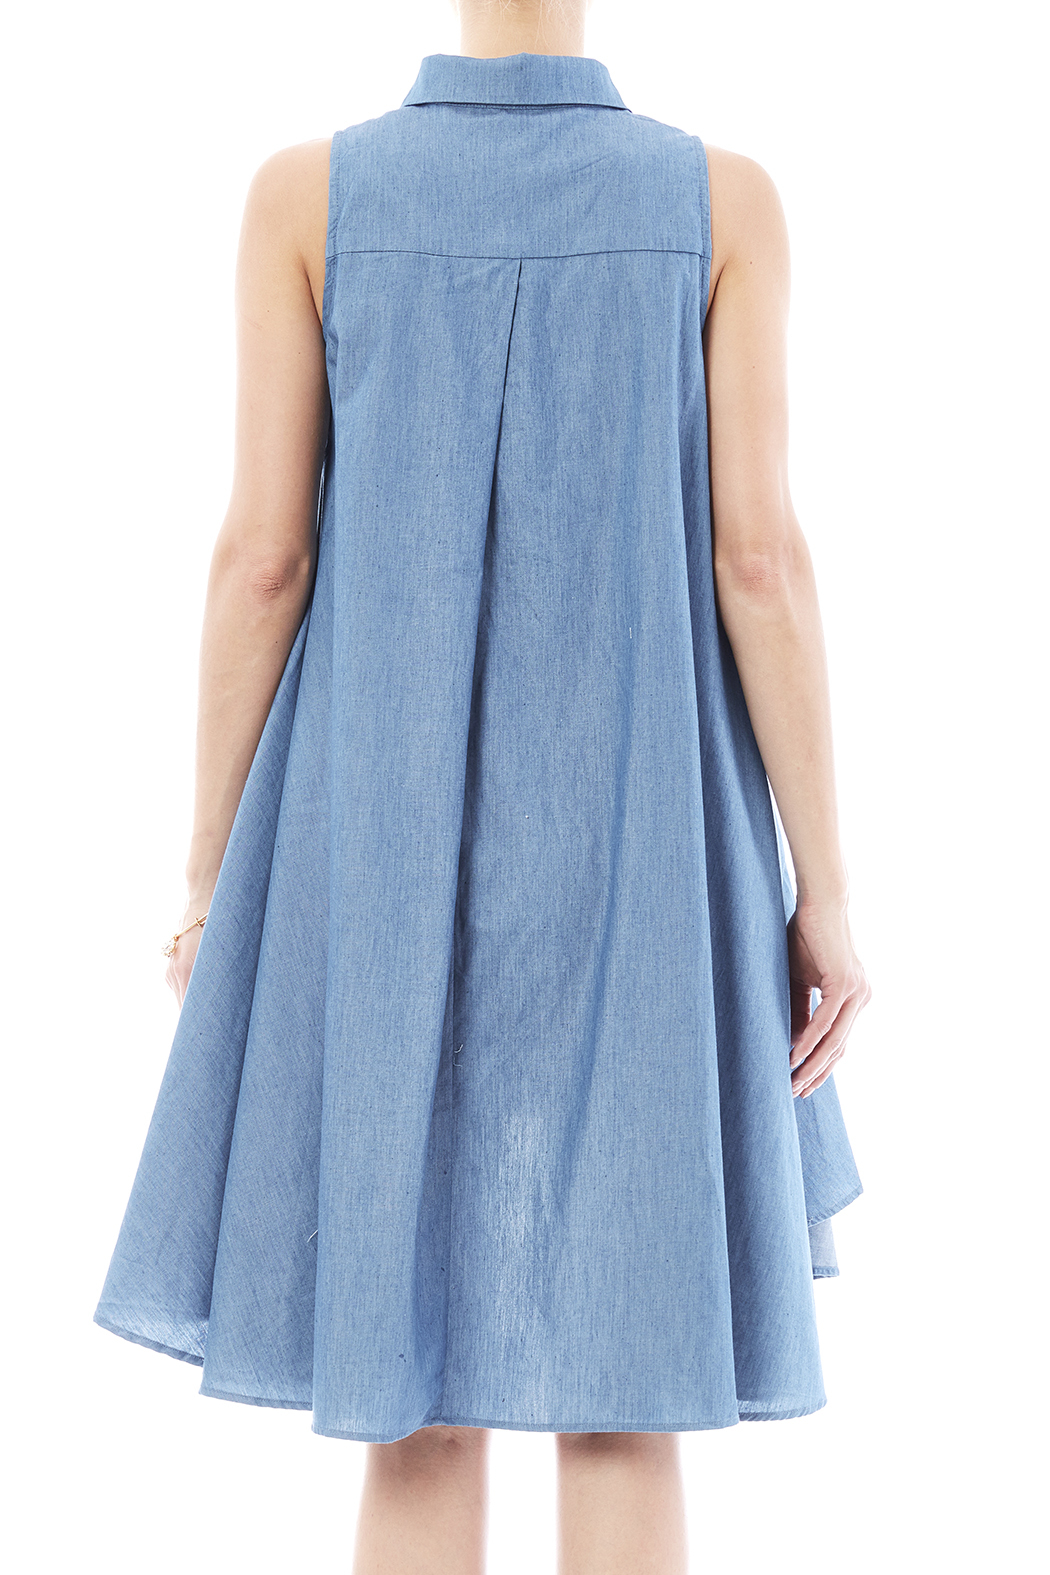 Ina Denim Swing Dress From Manhattan By Dor L Dor Shoptiques